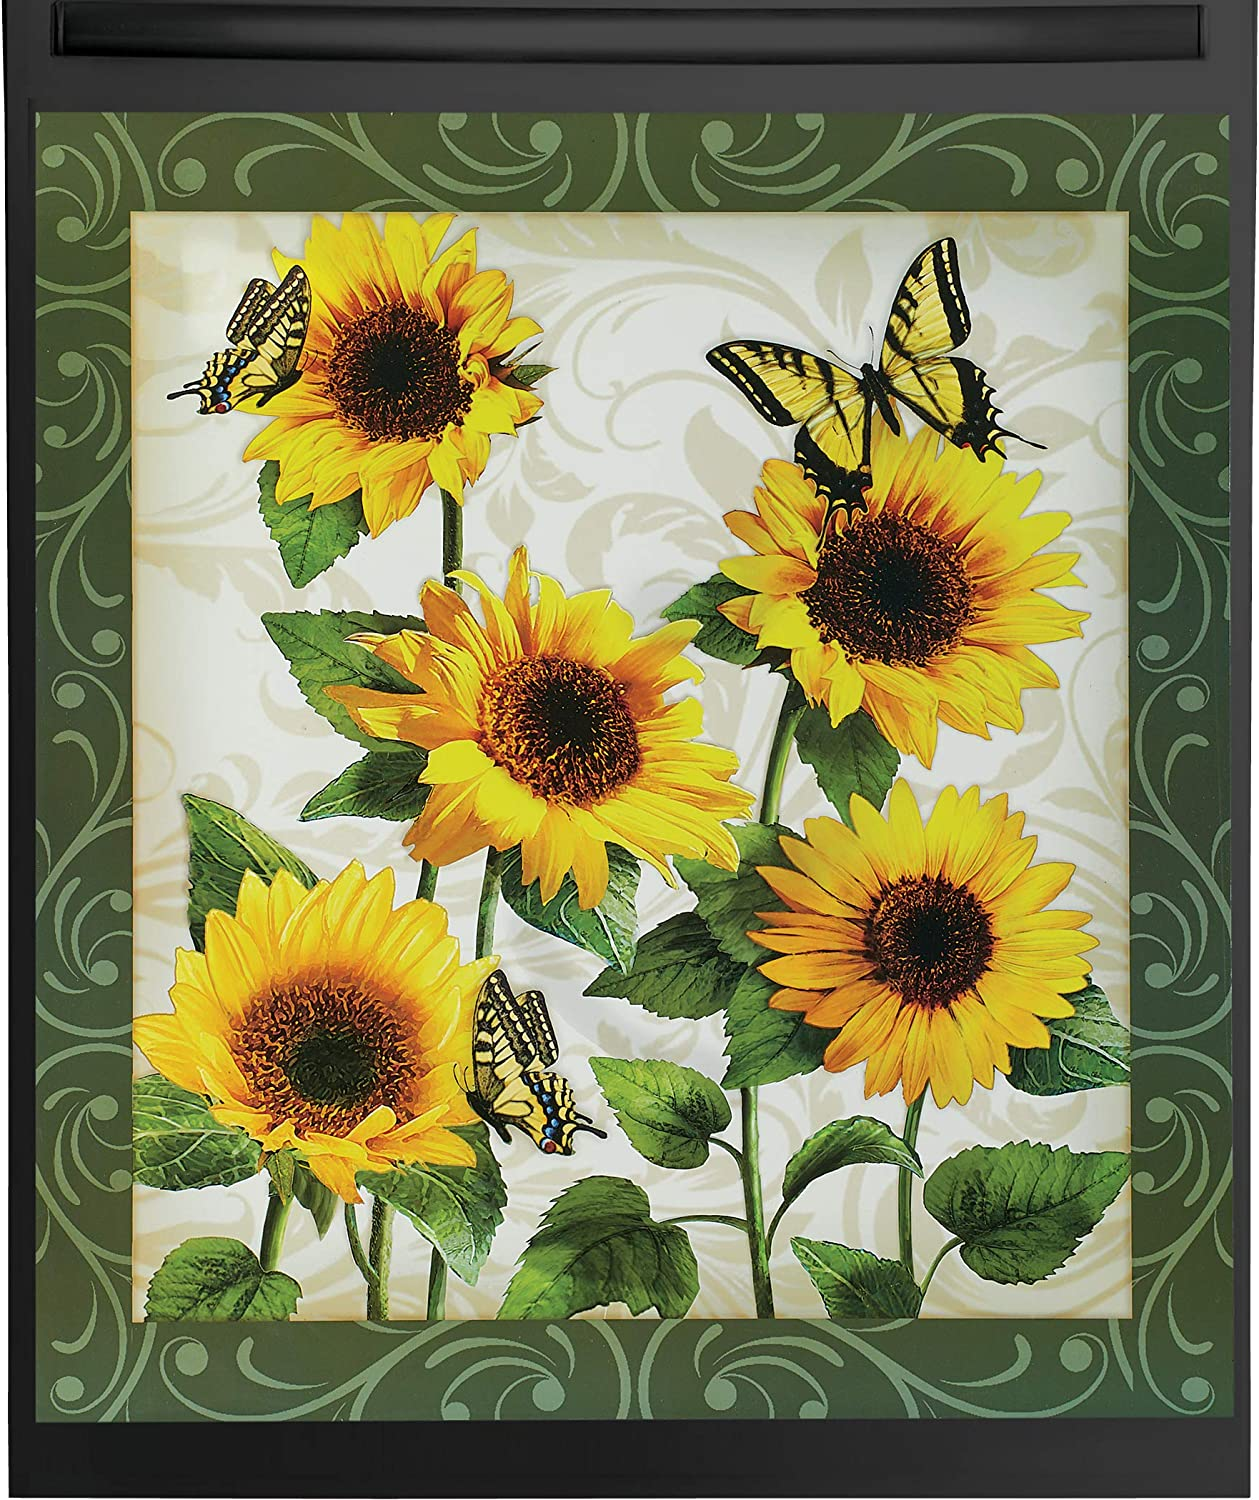 """Beautiful Sunflower Garden with Butterflies Kitchen Dishwasher Magnet - For Metal Washers - Decorative Floral Cover for all Seasons - 23"""" L x 26"""" H"""